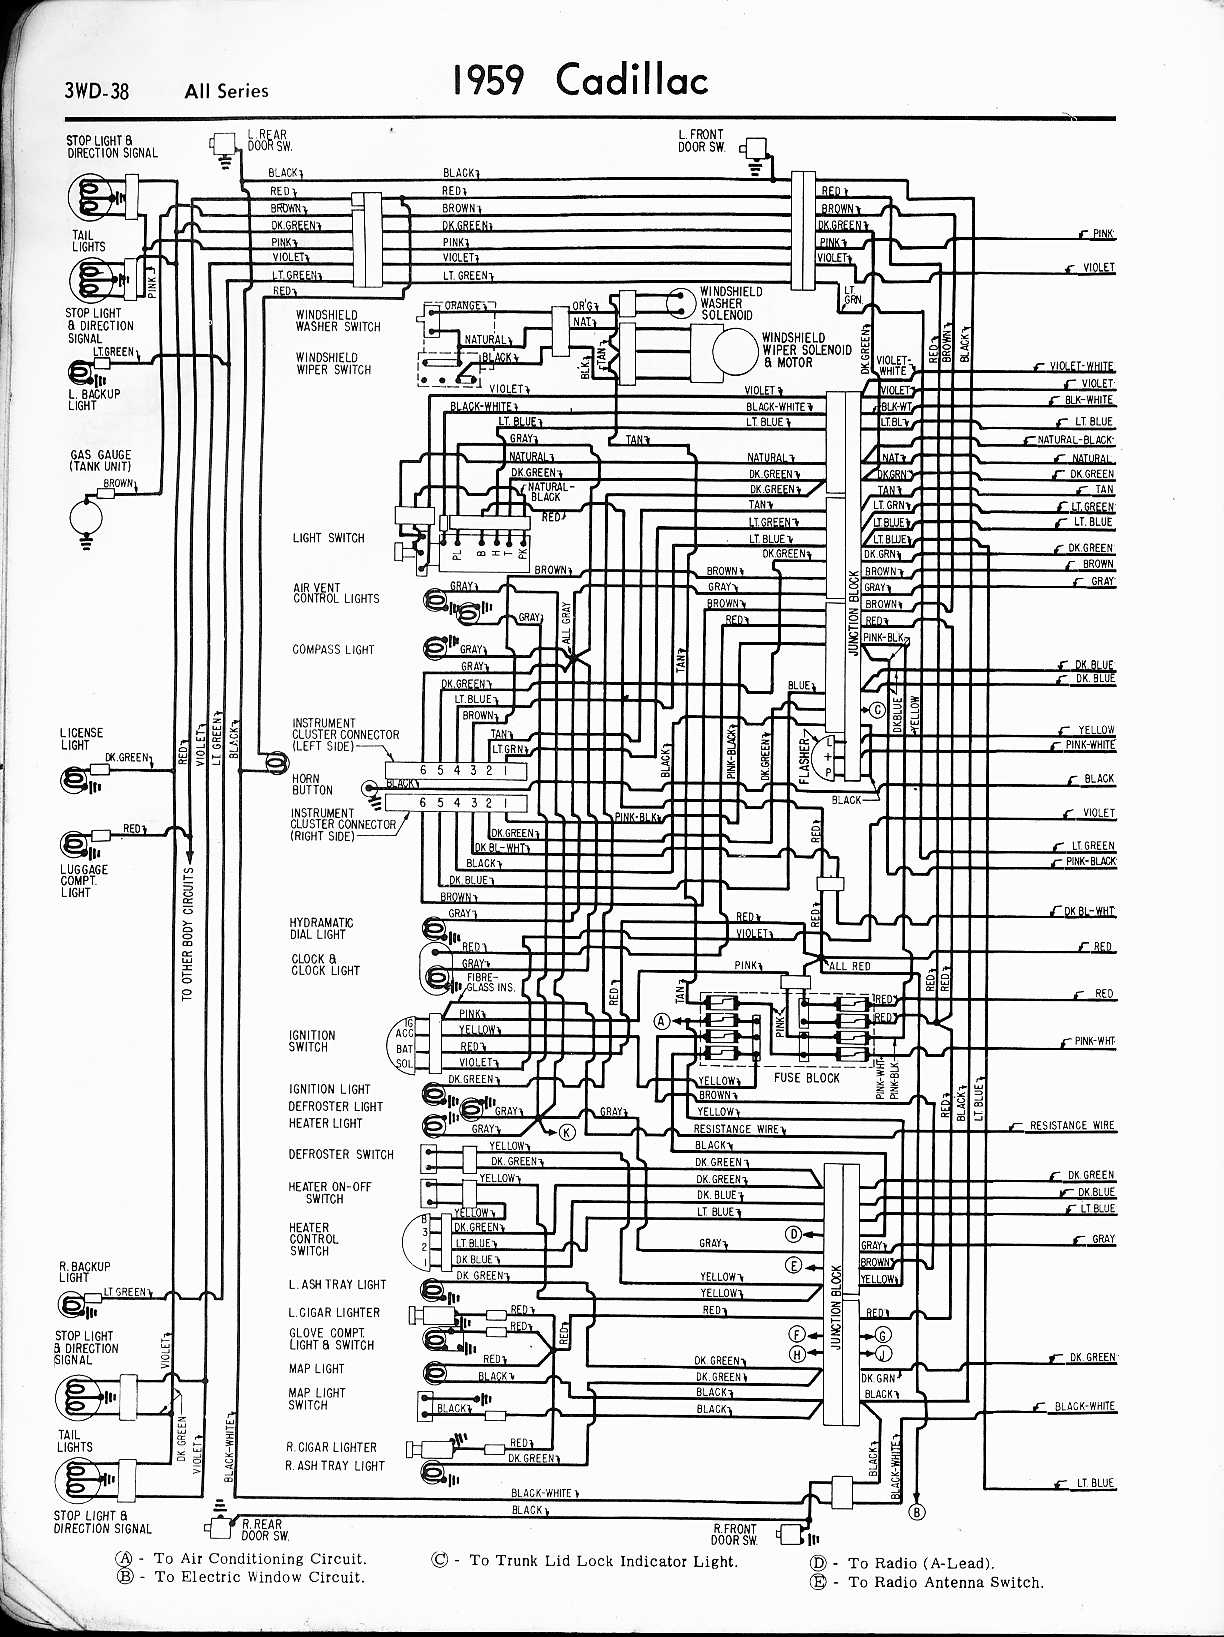 🏆 [DIAGRAM in Pictures Database] 2000 Cadillac Eldorado Wiring Diagrams  Just Download or Read Wiring Diagrams -  RONDA.ROUSEY.DIABLOSPORT-TRINITY.READER.ONYXUM.COMComplete Diagram Picture Database - Onyxum.com